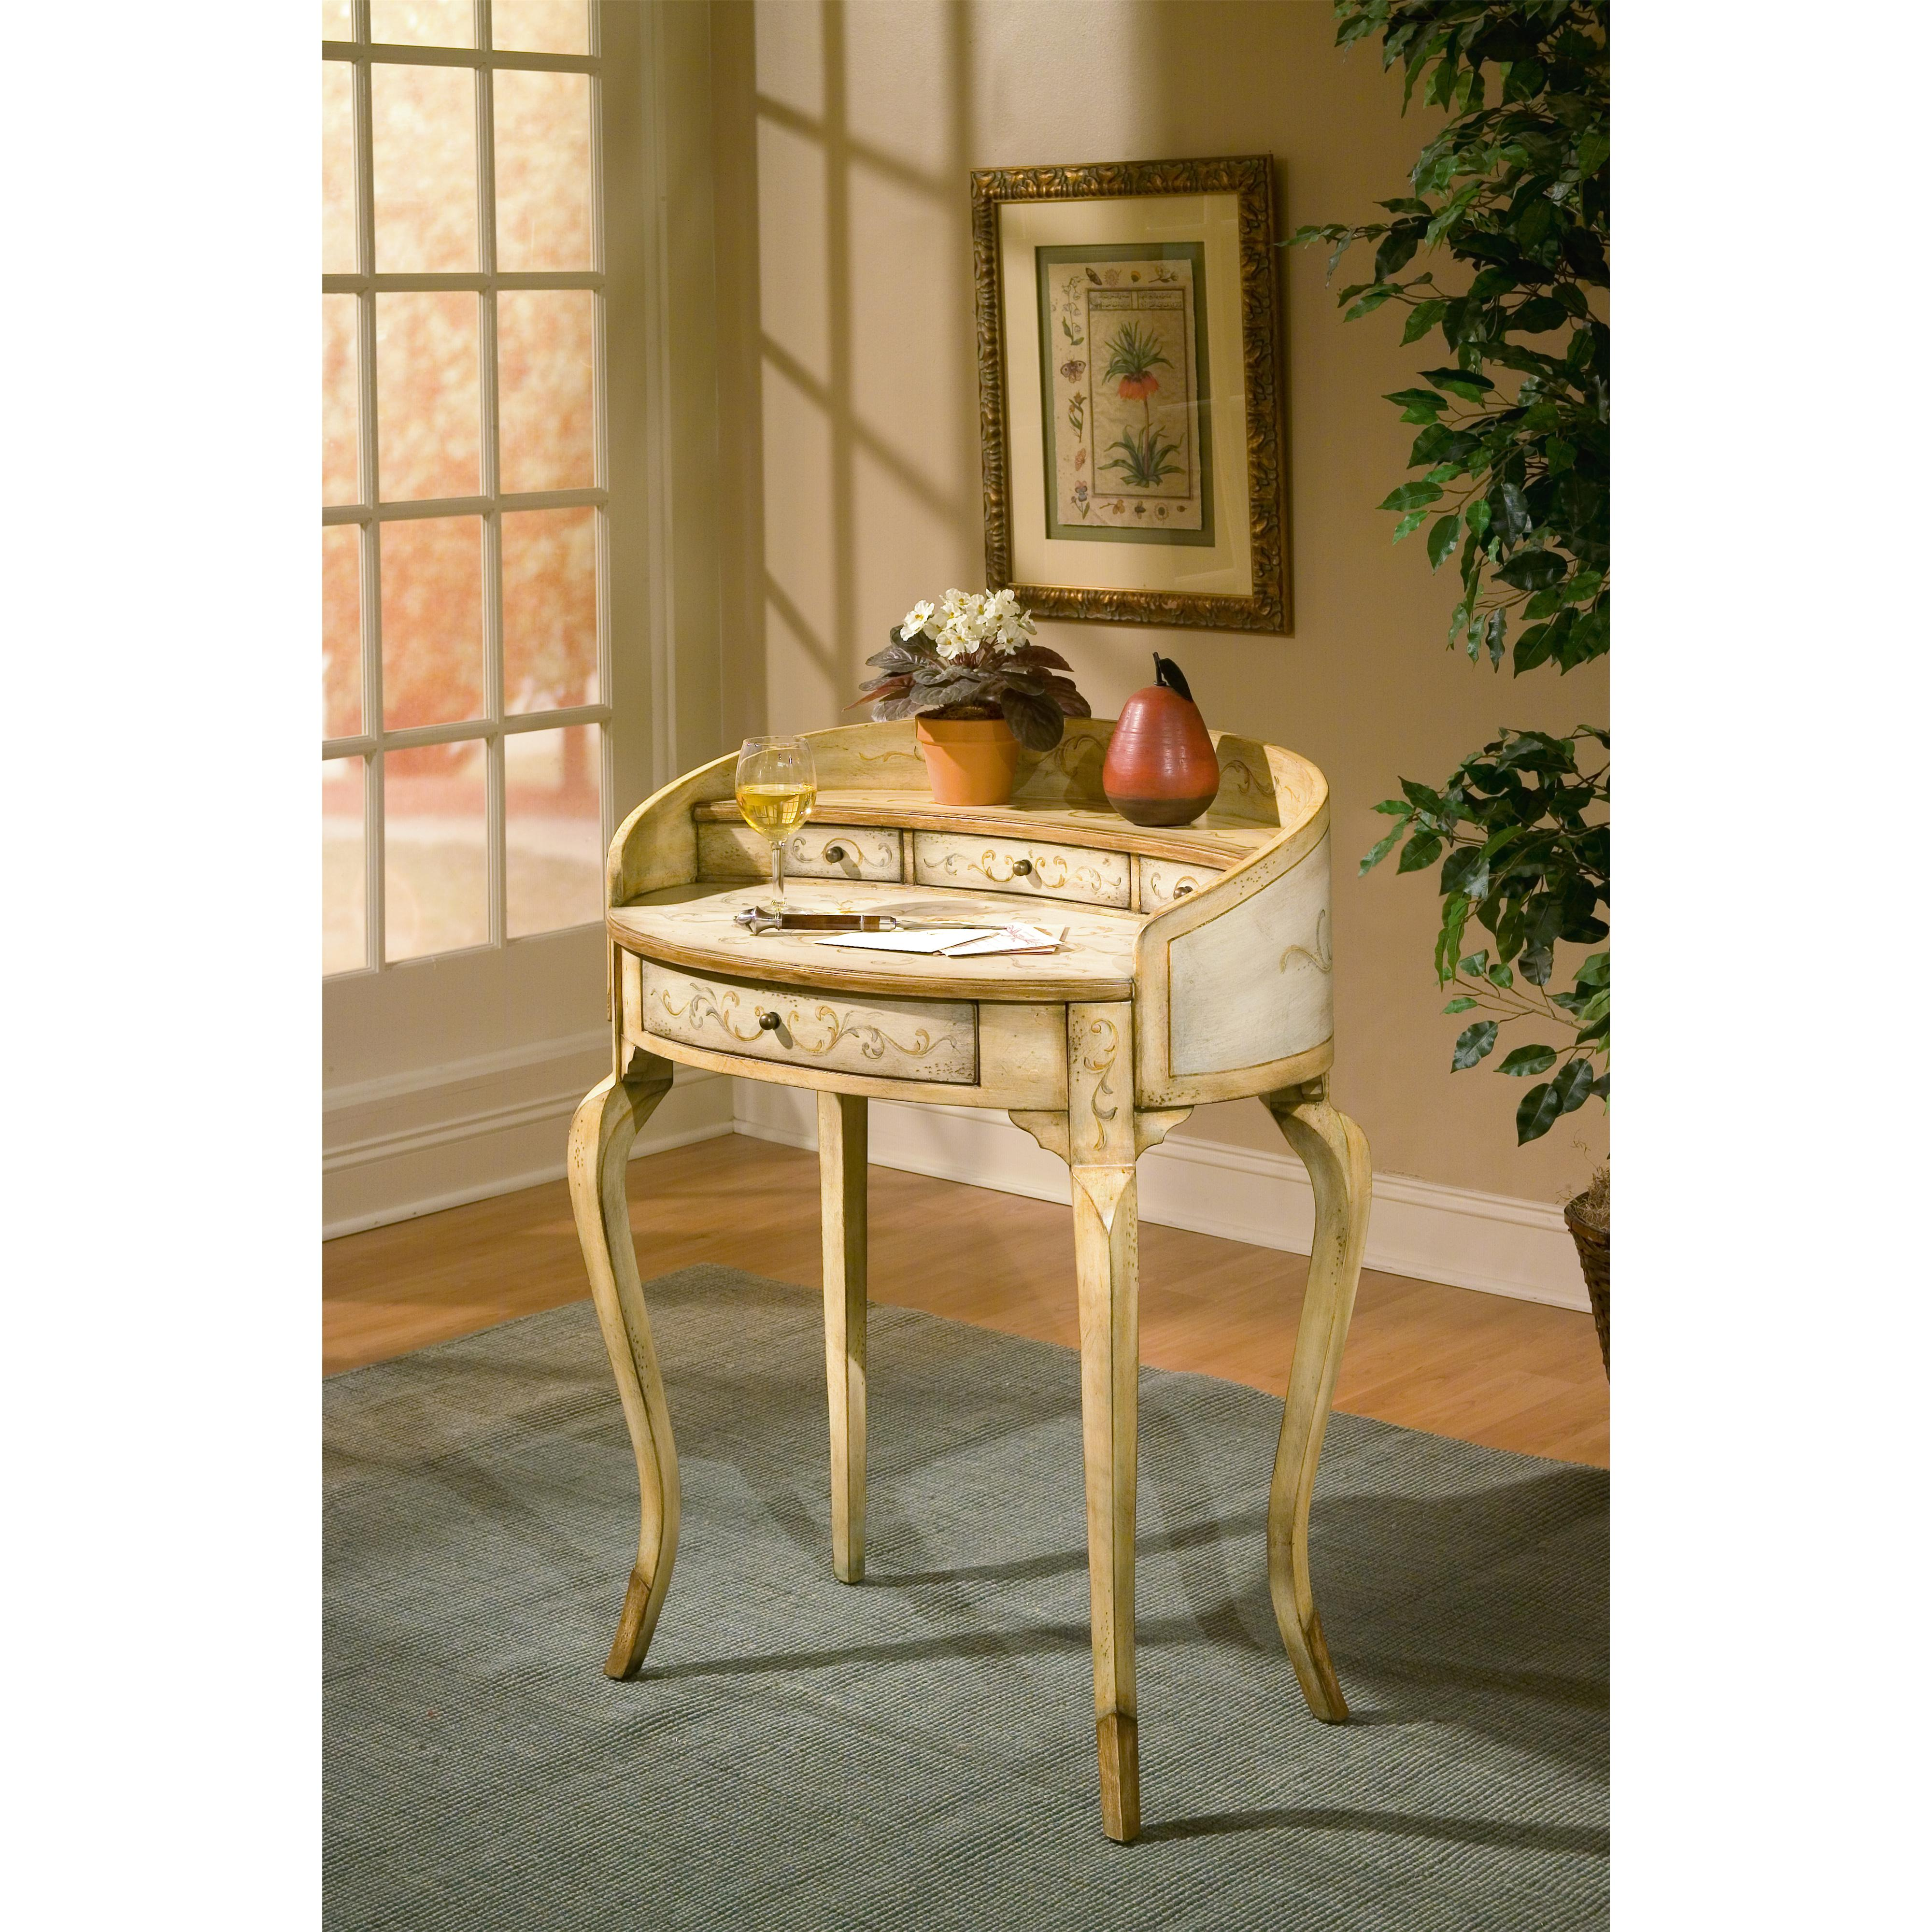 Butler Specialty Company Artist's Originals Ladies Writing Desk - Item Number: 1335041